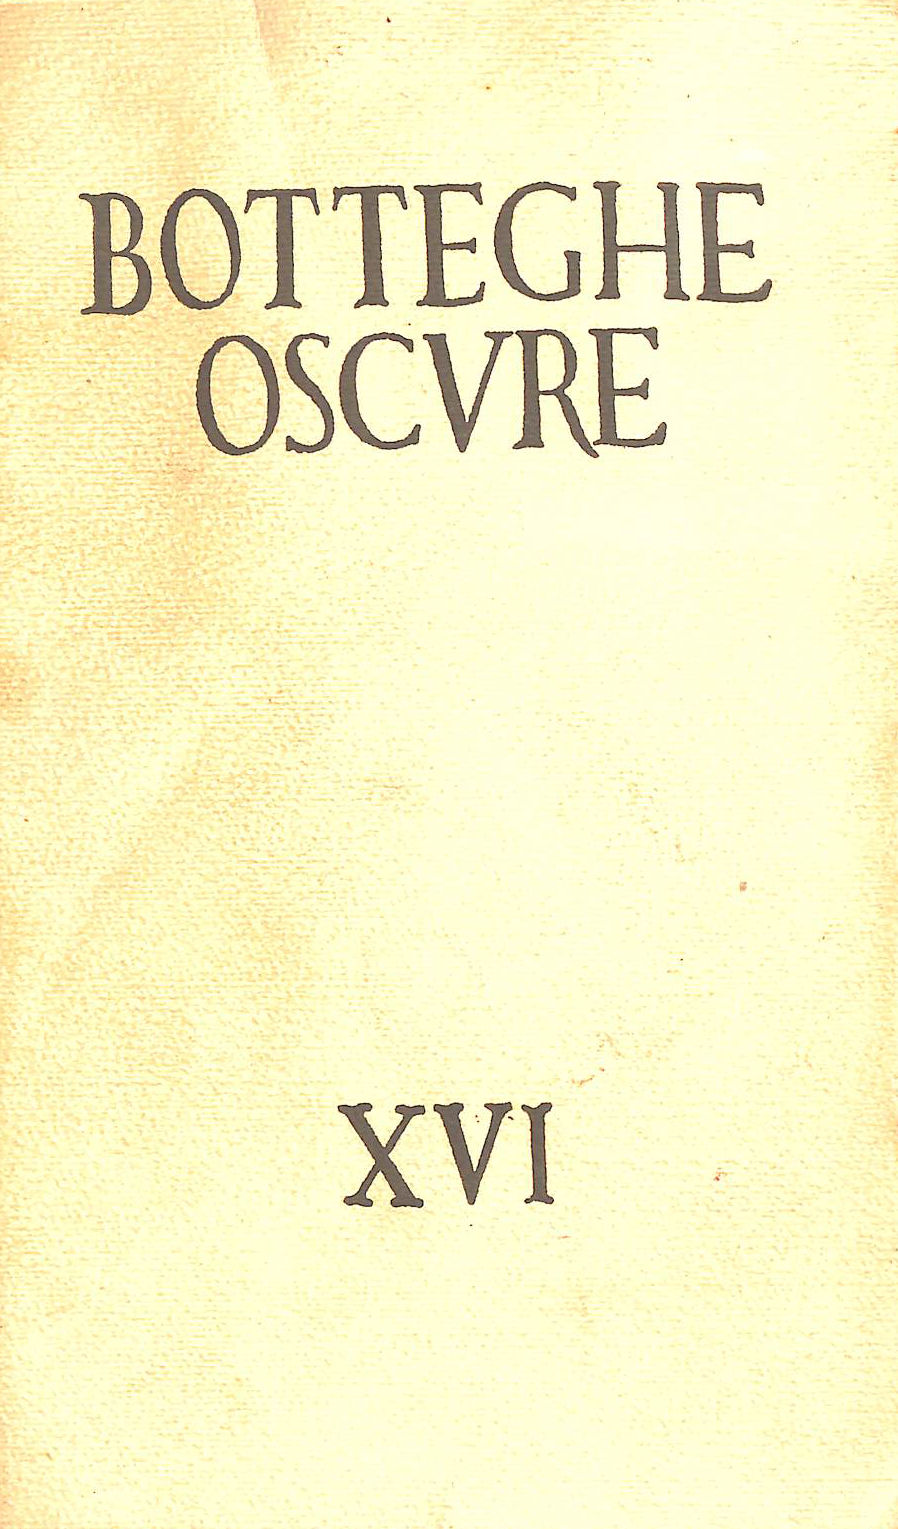 Image for Botteghe Oscure. 1955, Quaderno n. XVI